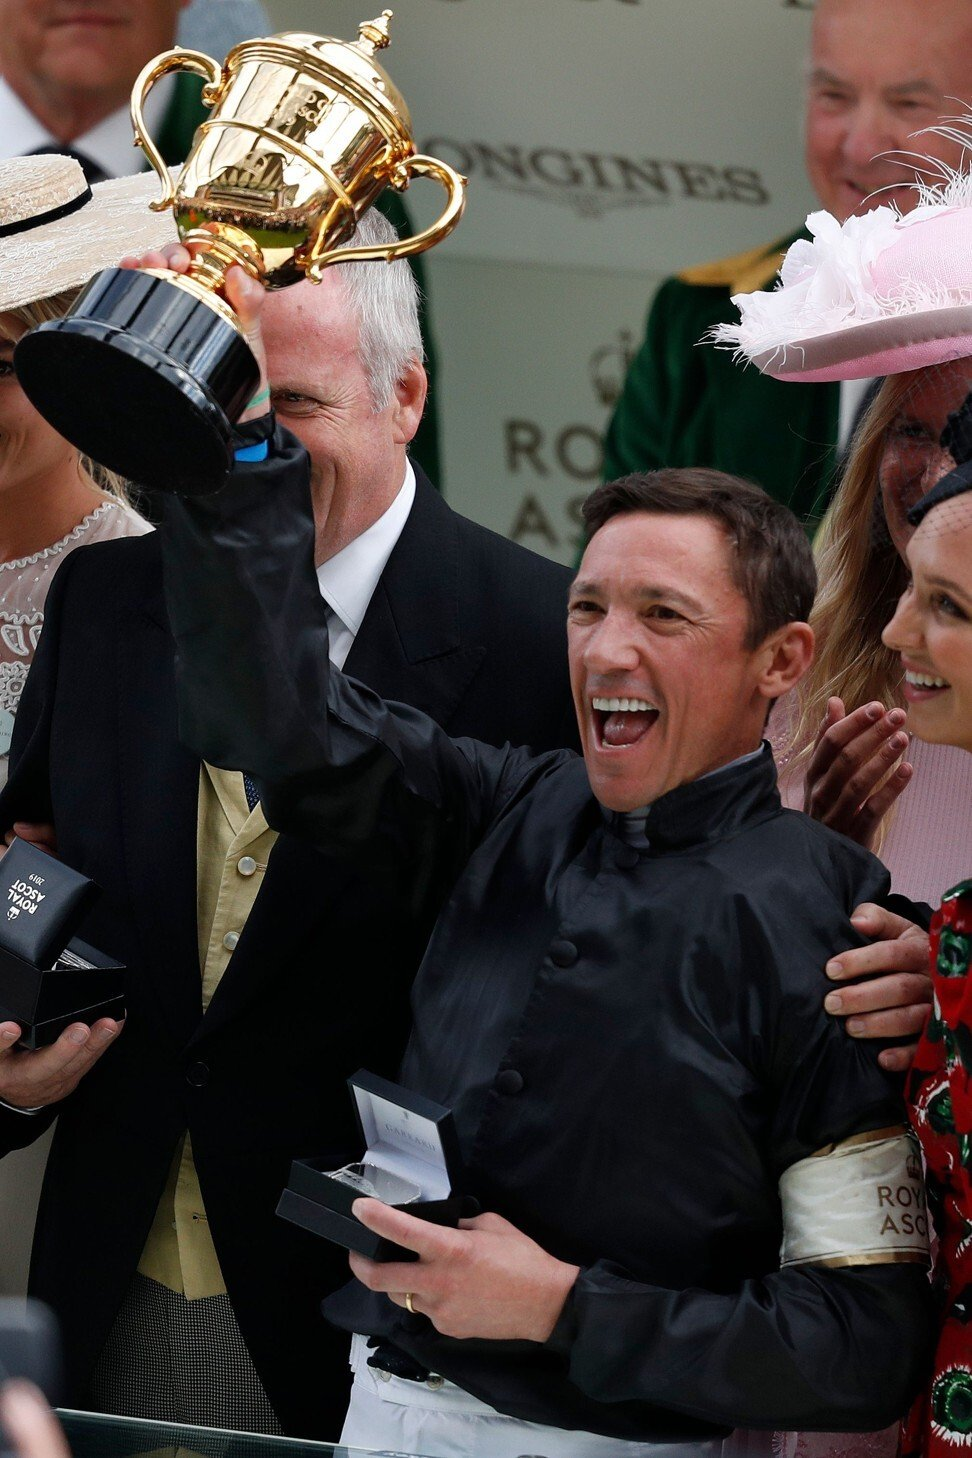 Frankie Dettori celebrates his Gold Cup victory last year. Photo: AFP